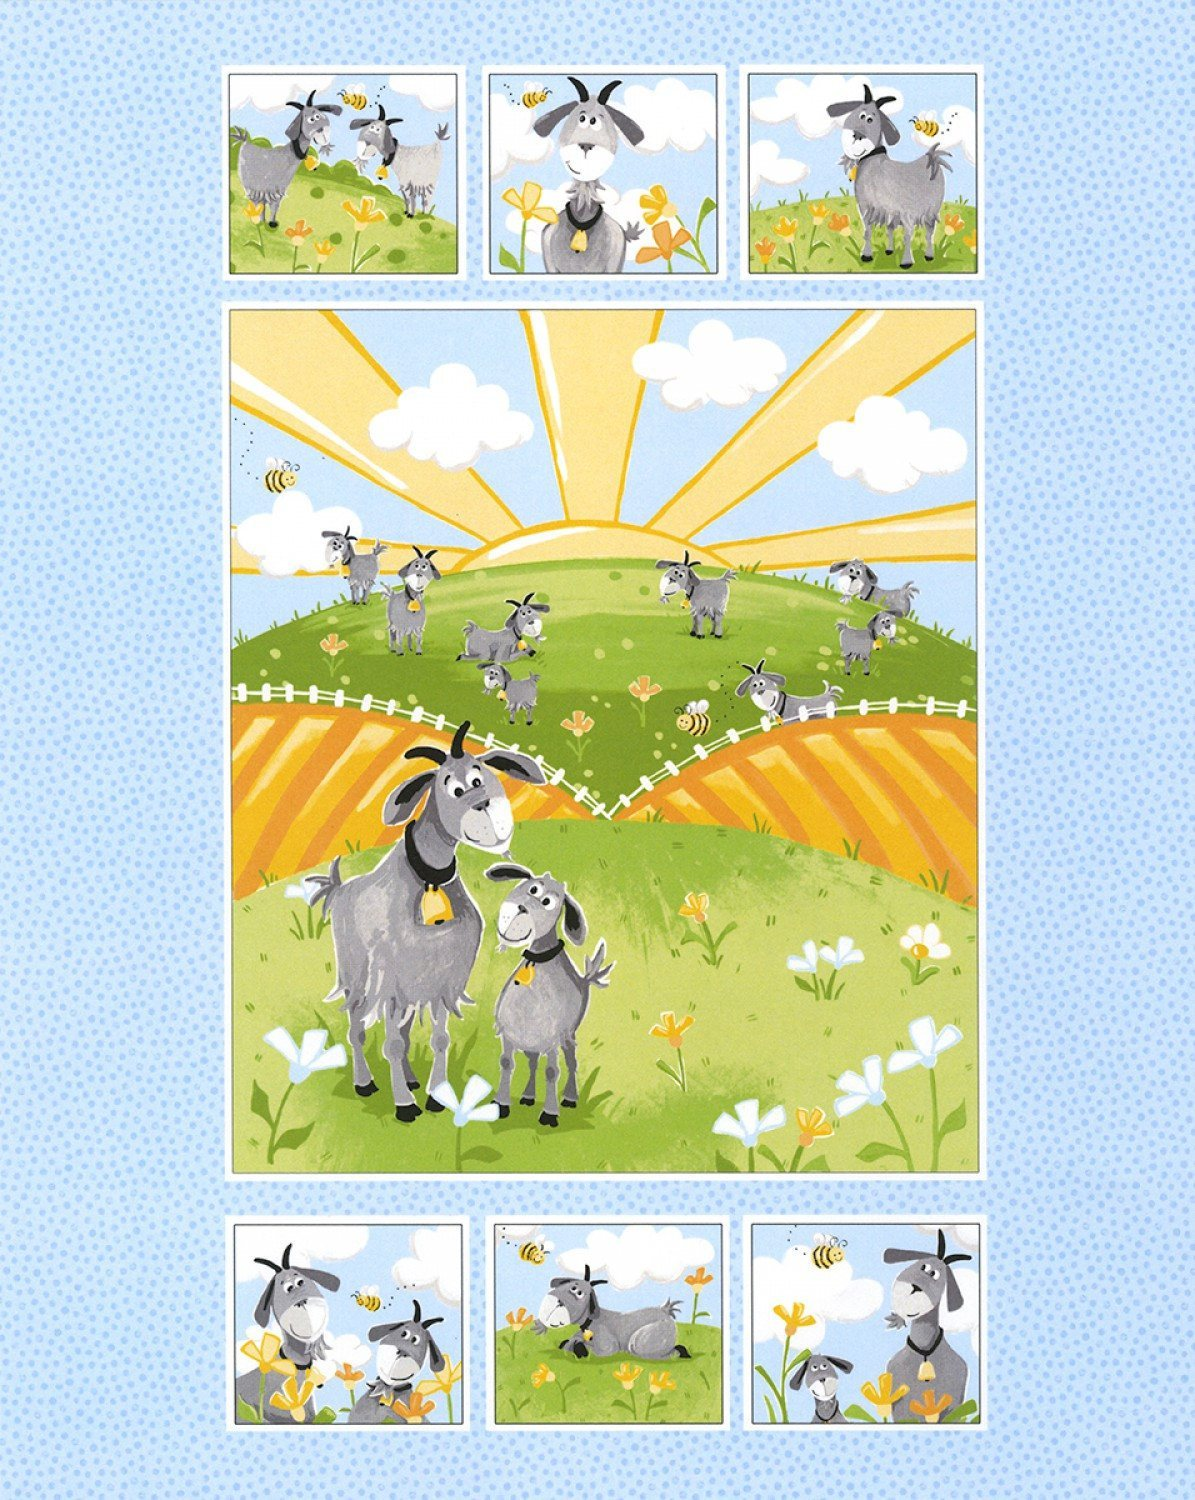 HILDY THE GOAT Fabric Panel From Susybee Collections 36 x 44 inches